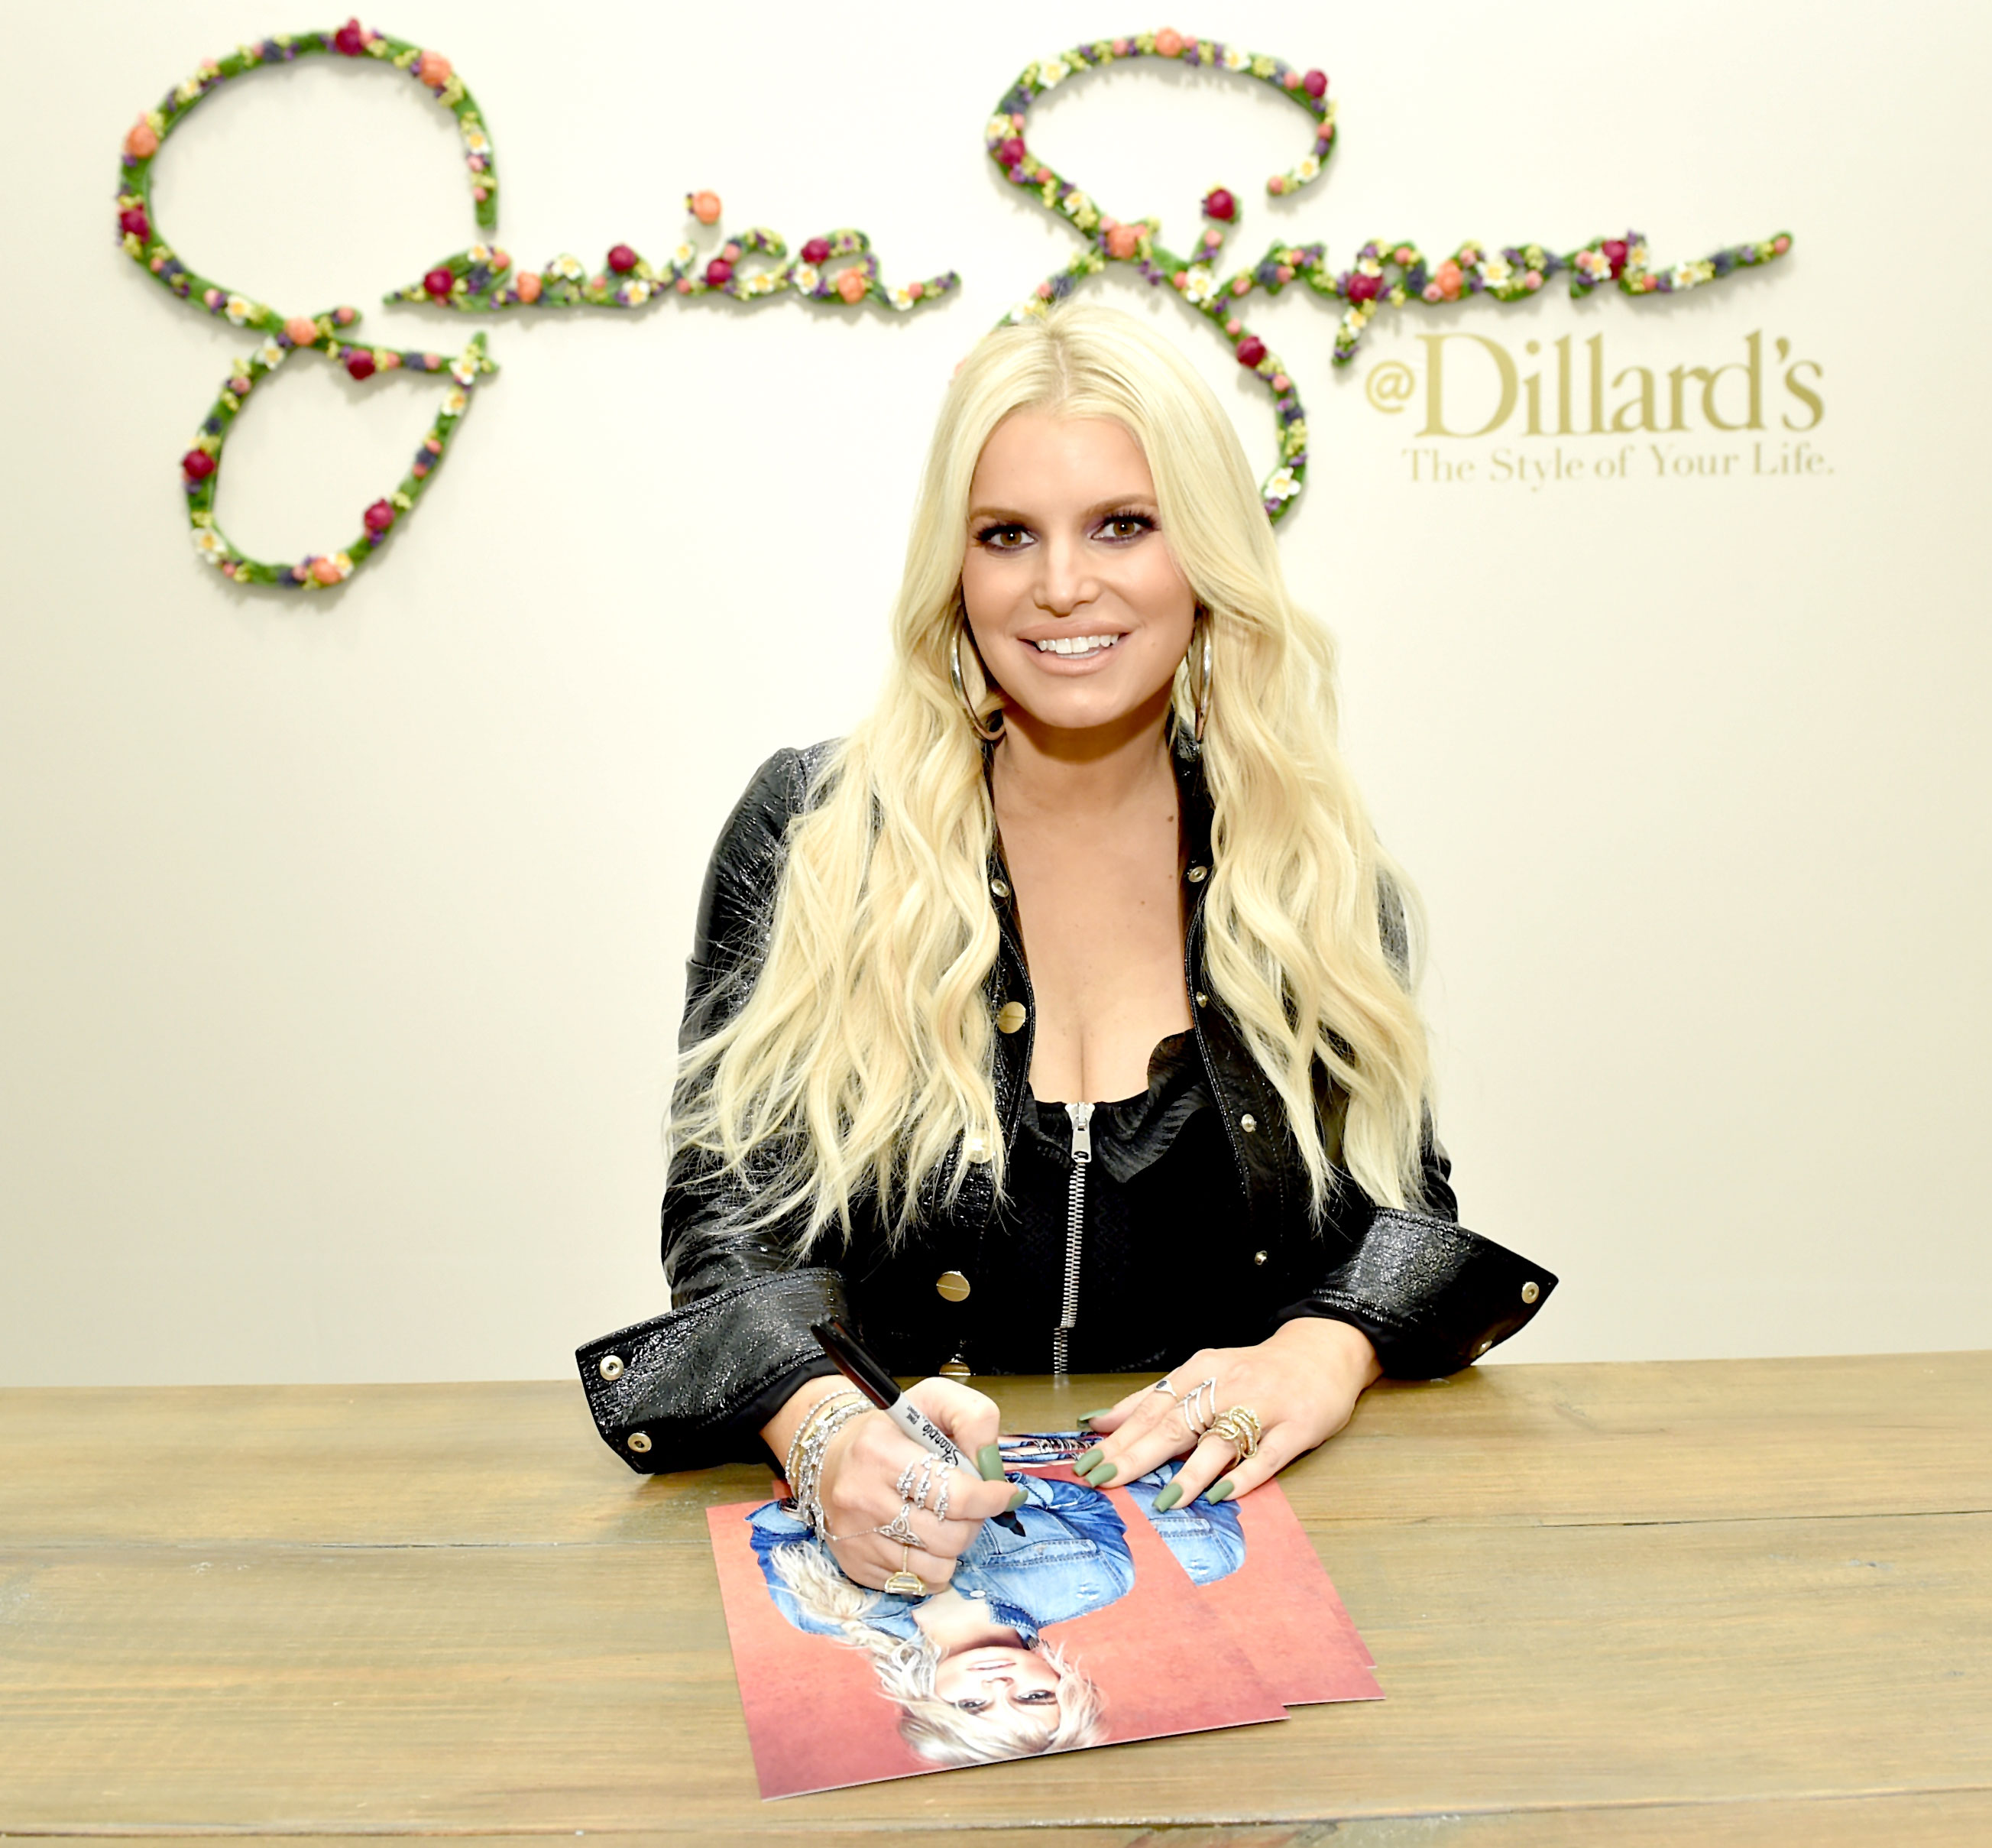 """jessica simpson celebrity ceos gallery - """"My business is the heart of who I am,"""" Simpson told Fortune about her retail company, Jessica Simpson Collection, which generates an estimated $1 billion a year. """"I want to make every woman feel confident in what they're wearing… I have been every size on the planet and I understand women."""""""